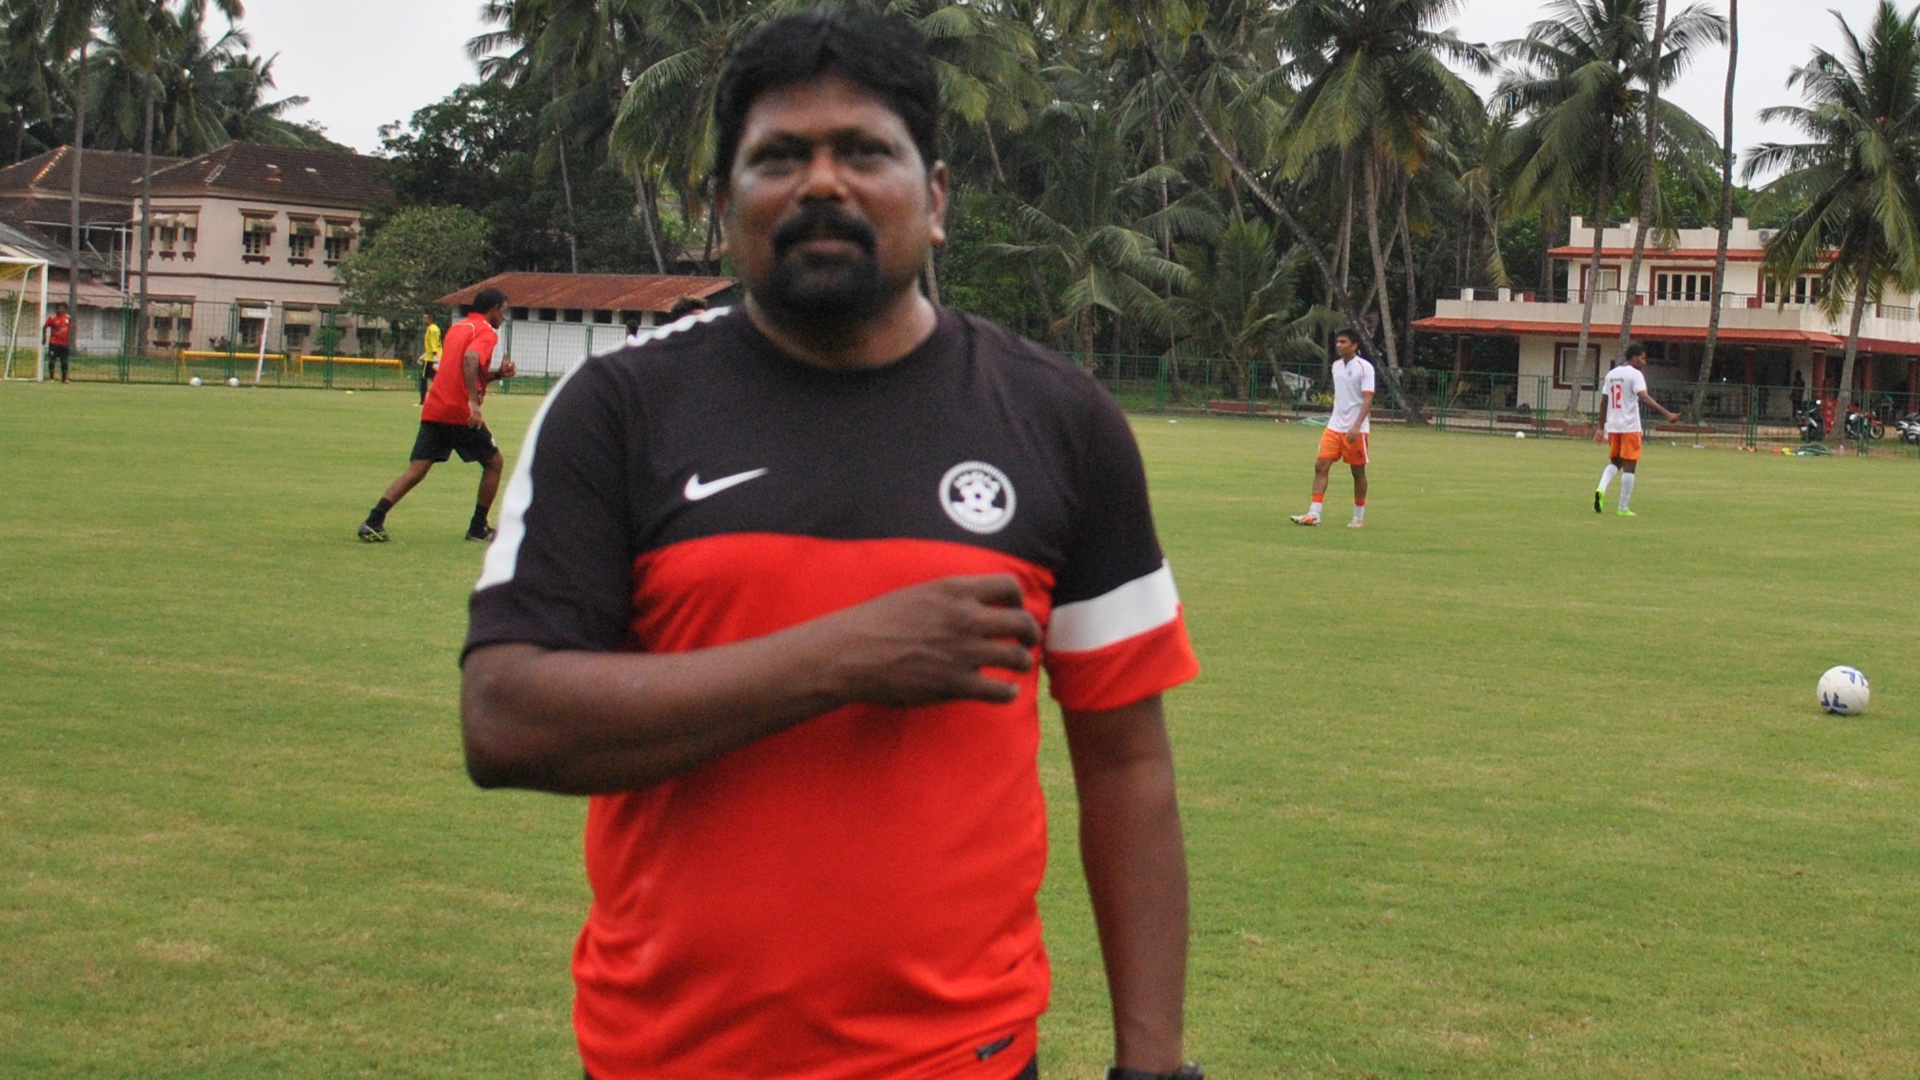 I-League 2019-20: Aizawl FC's Stanley Rozario - Only a good start will help us move forward